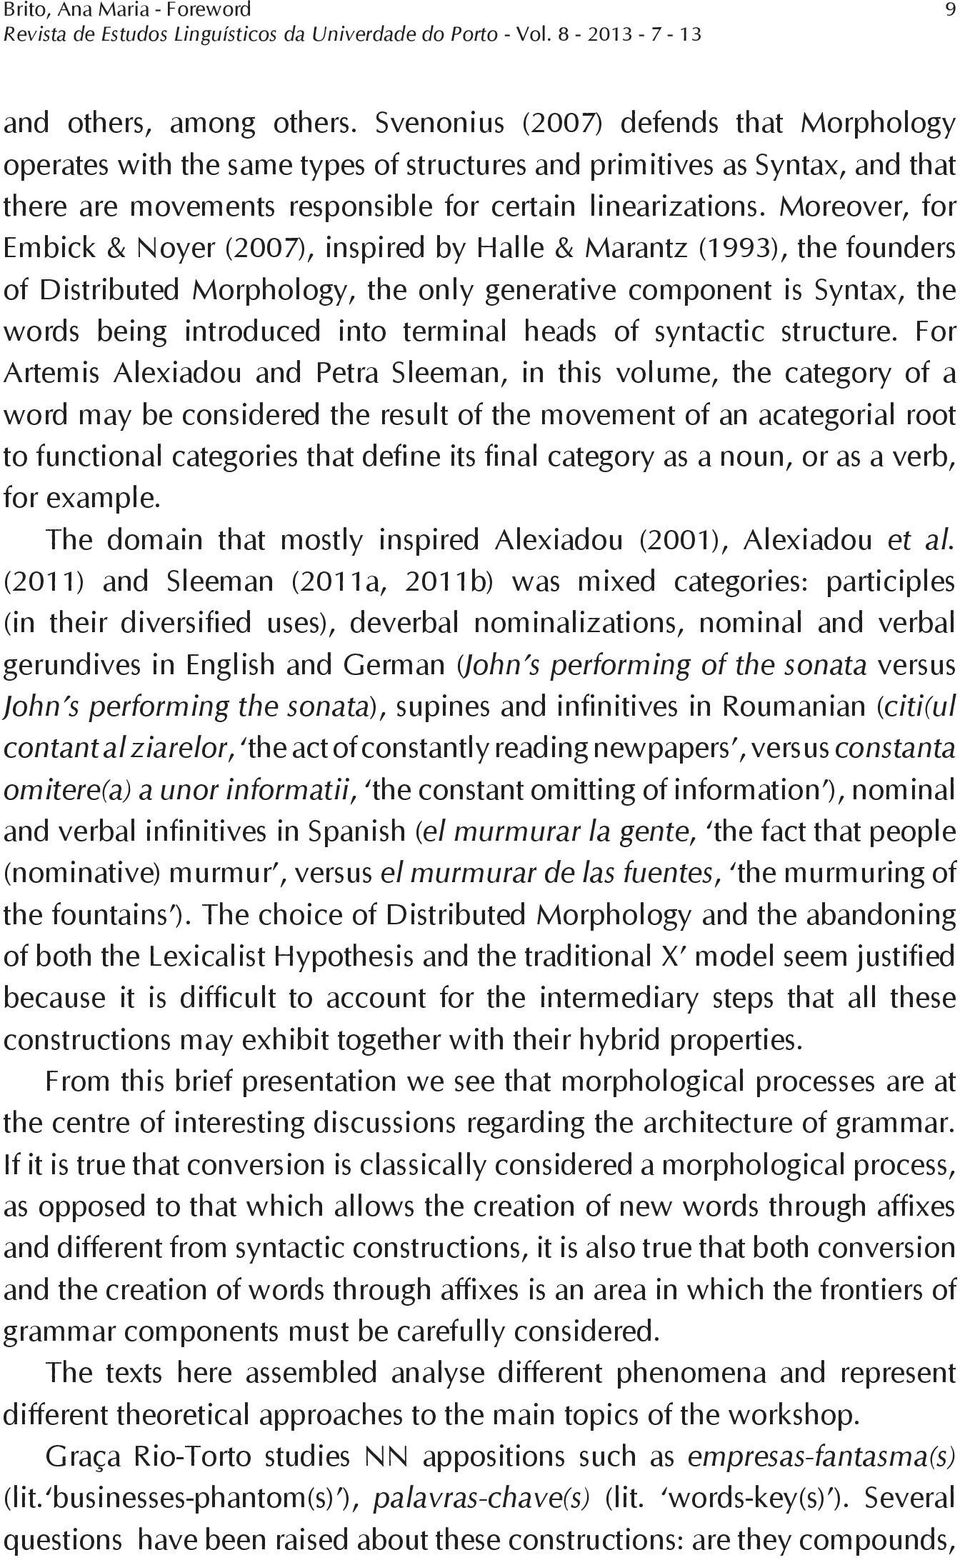 Moreover, for Embick & Noyer (2007), inspired by Halle & Marantz (1993), the founders of Distributed Morphology, the only generative component is Syntax, the words being introduced into terminal